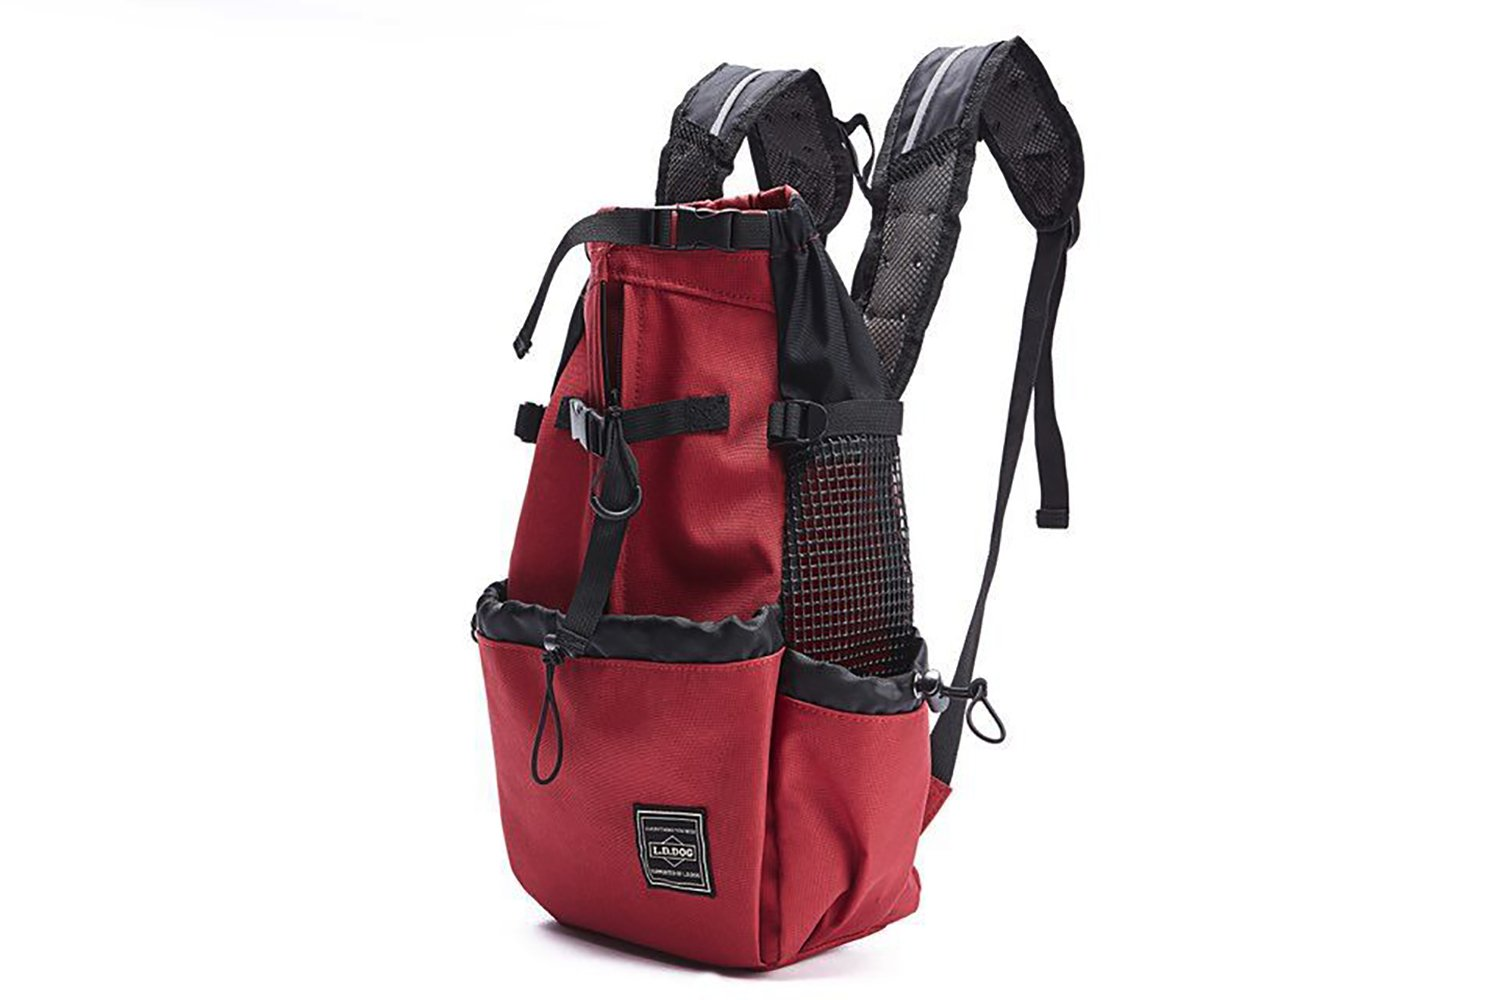 Red L Red L RONGXIN Breathable Travel Bag Made of Pet Bag, Pet Chest Backpack (S, L, M, XL)